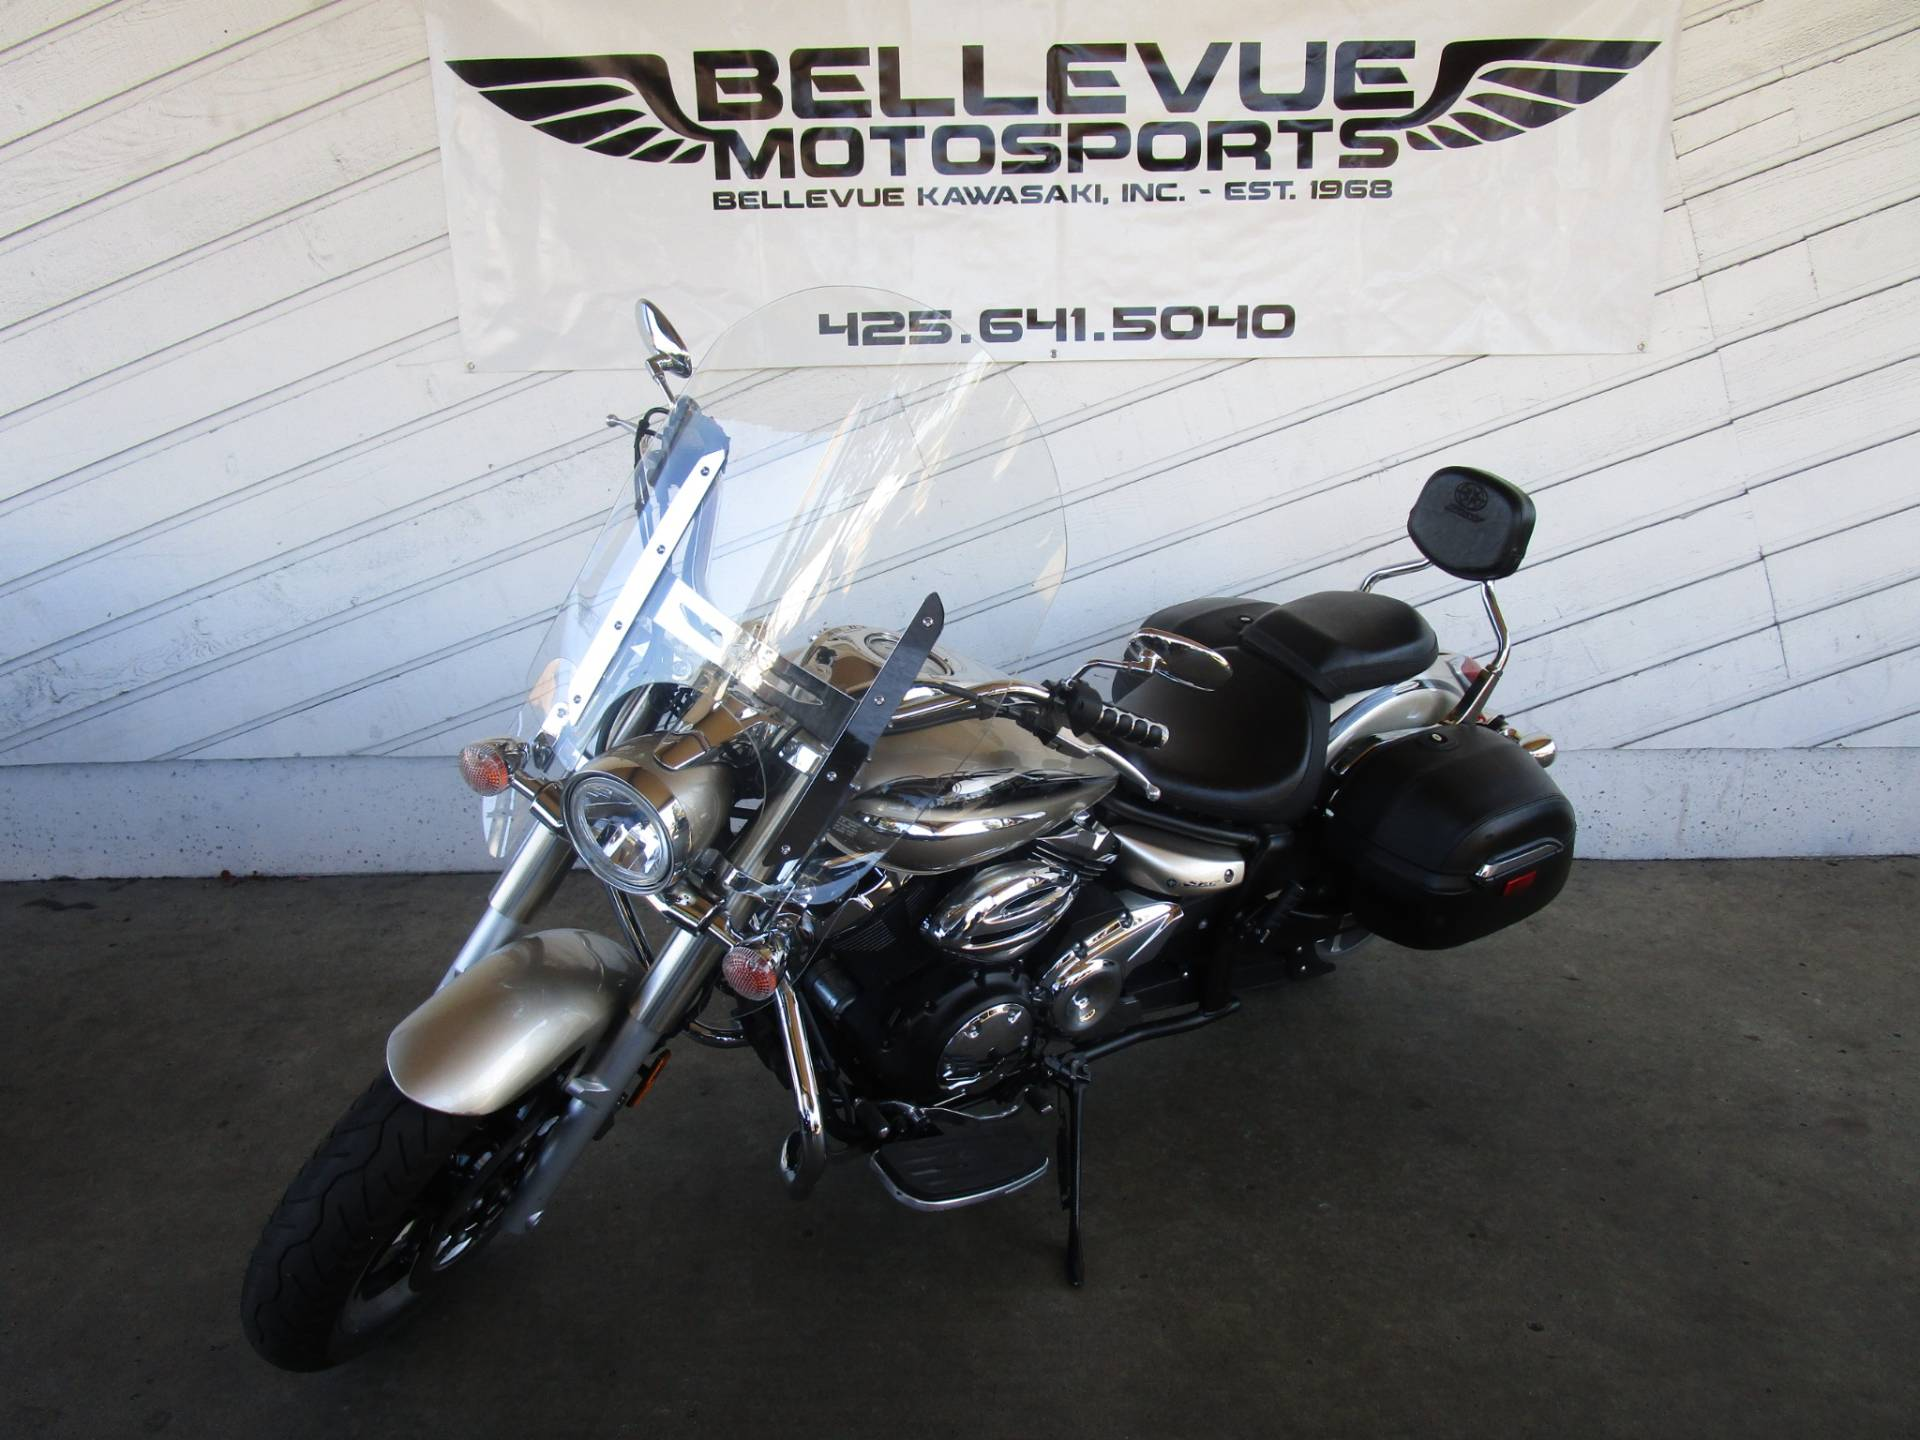 2010 Yamaha V Star 950 Tourer in Bellevue, Washington